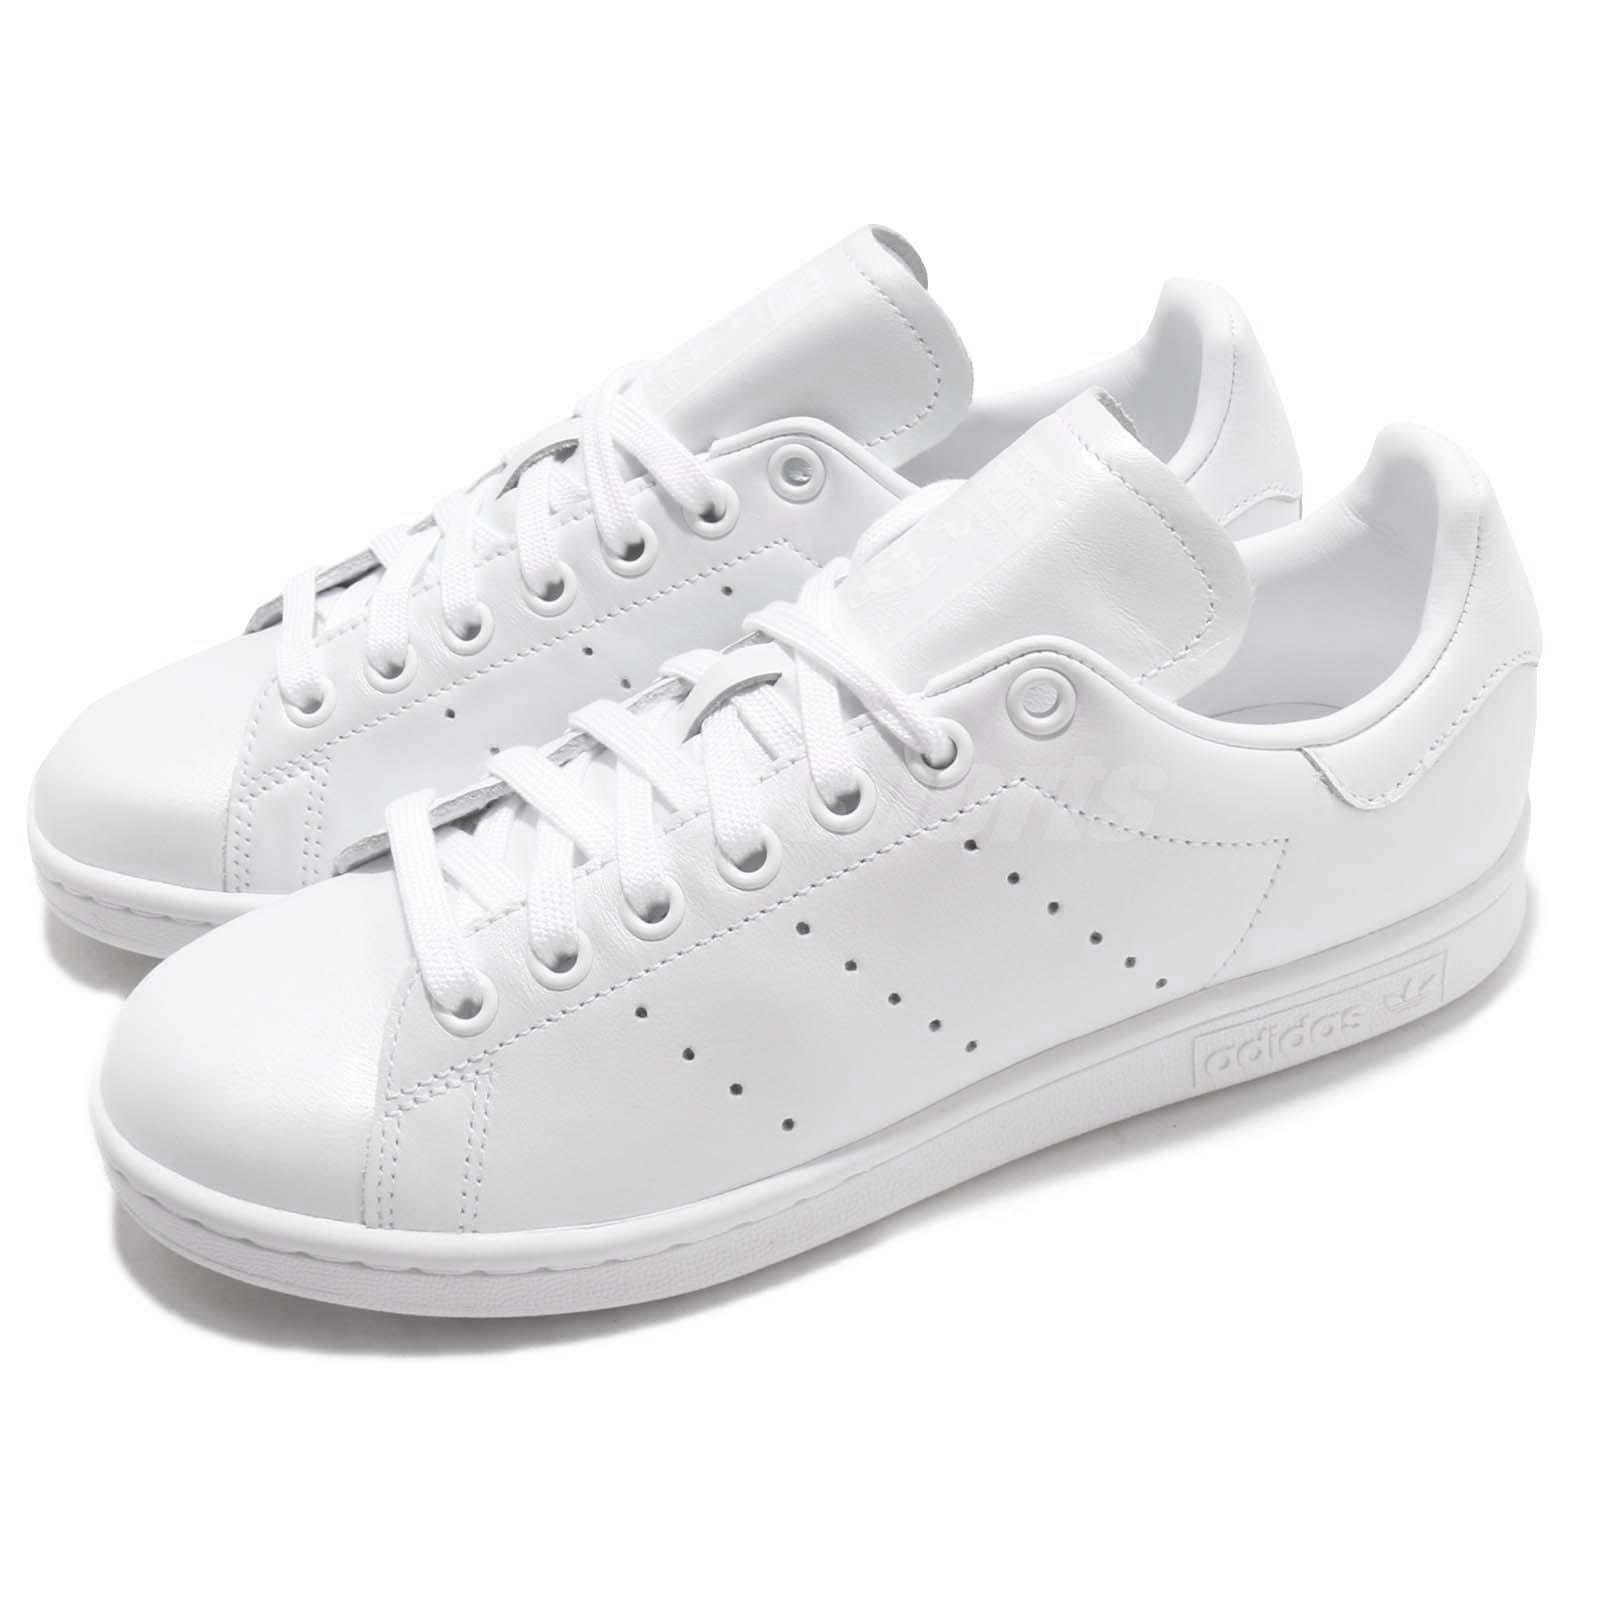 najlepsze buty kolejna szansa niepokonany x Details about adidas Originals Stan Smith W Triple White Women Casual Shoes  Sneakers D96792